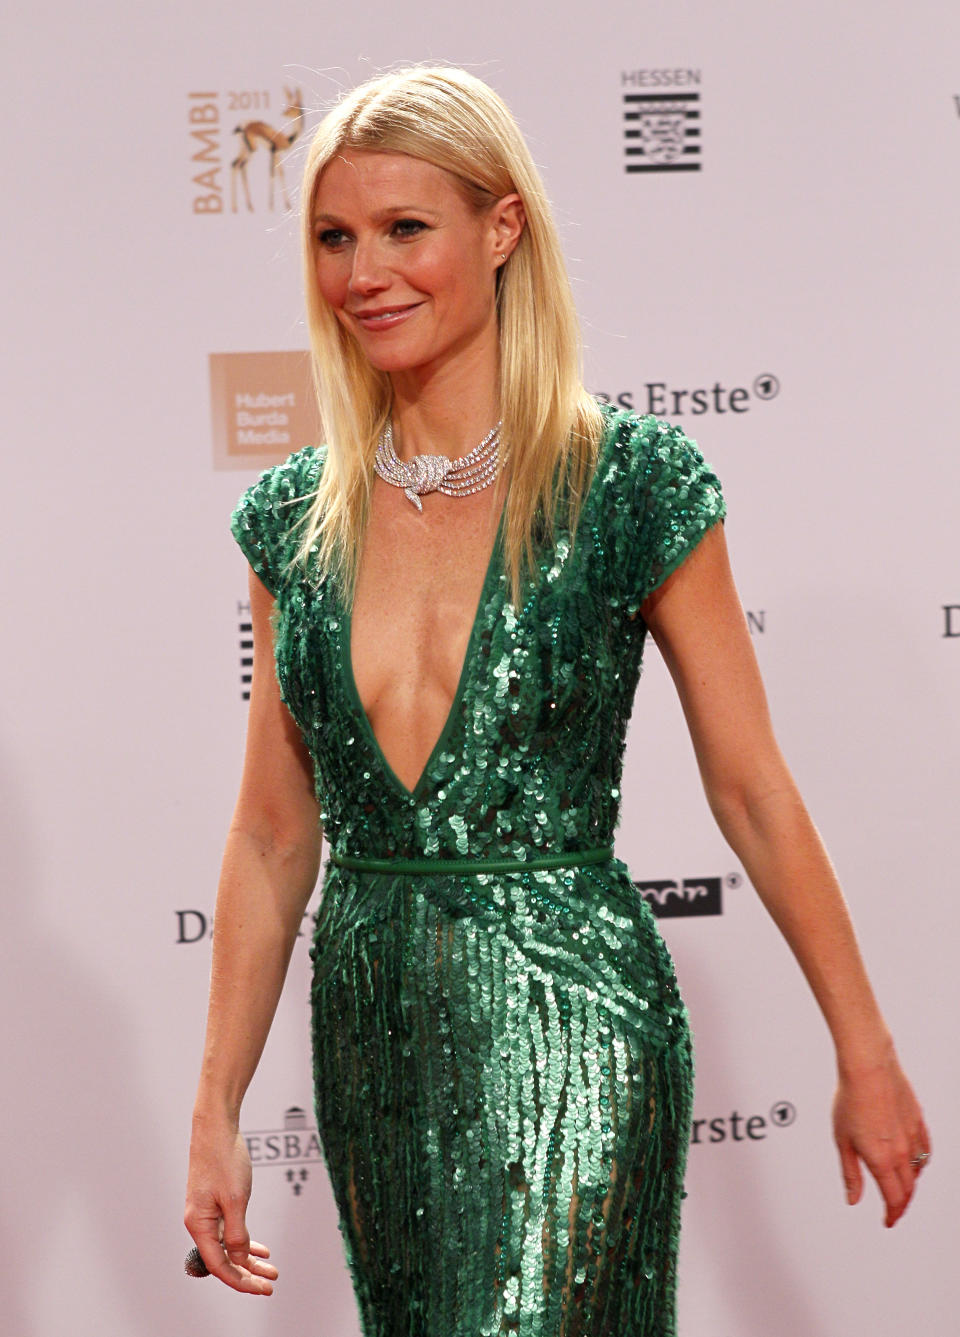 Actress Gwyneth Paltrow poses on the red carpet as she arrives for the 63rd Bambi media award ceremony in Wiesbaden November 10, 2011. Every year, the German media company 'Hubert Burda Media', honors celebrities from the world of entertainment, literature, sports and politics with the Bambi awards. REUTERS/Alex Domanski (GERMANY - Tags: ENTERTAINMENT)